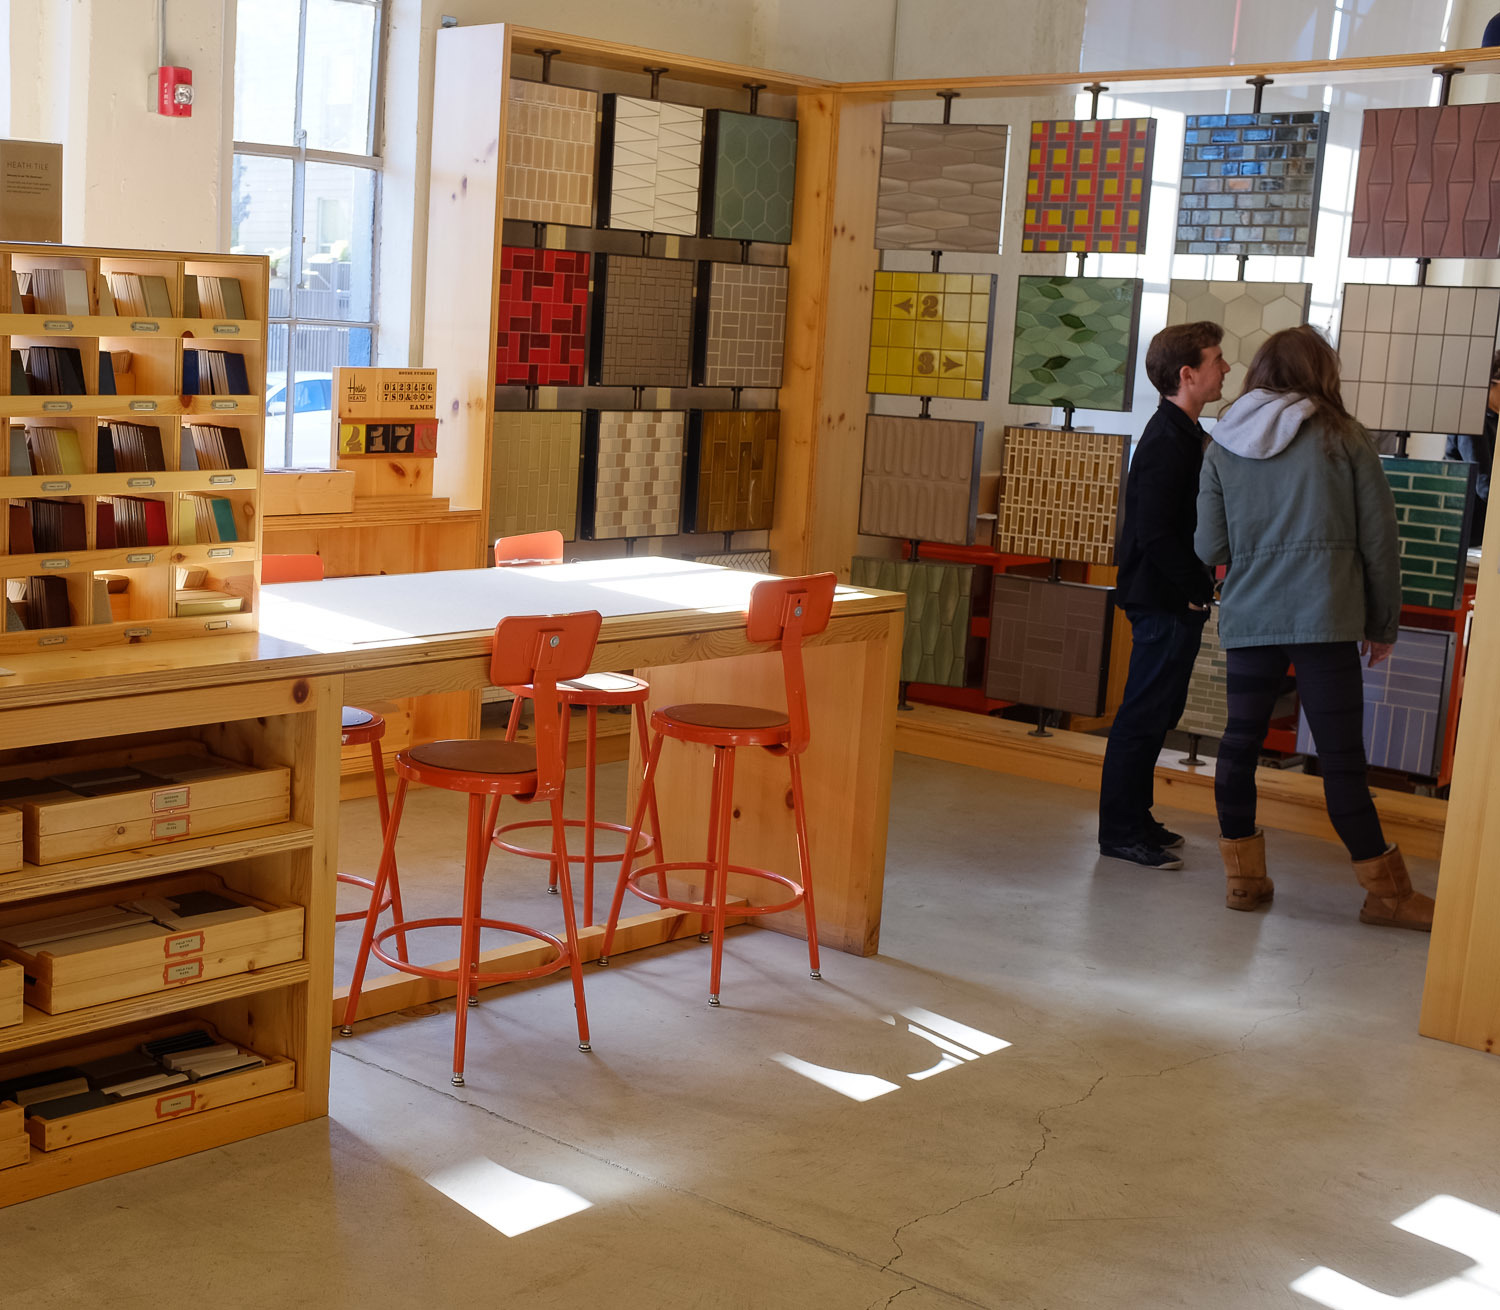 Heath Ceramics display in their store, San Francisco